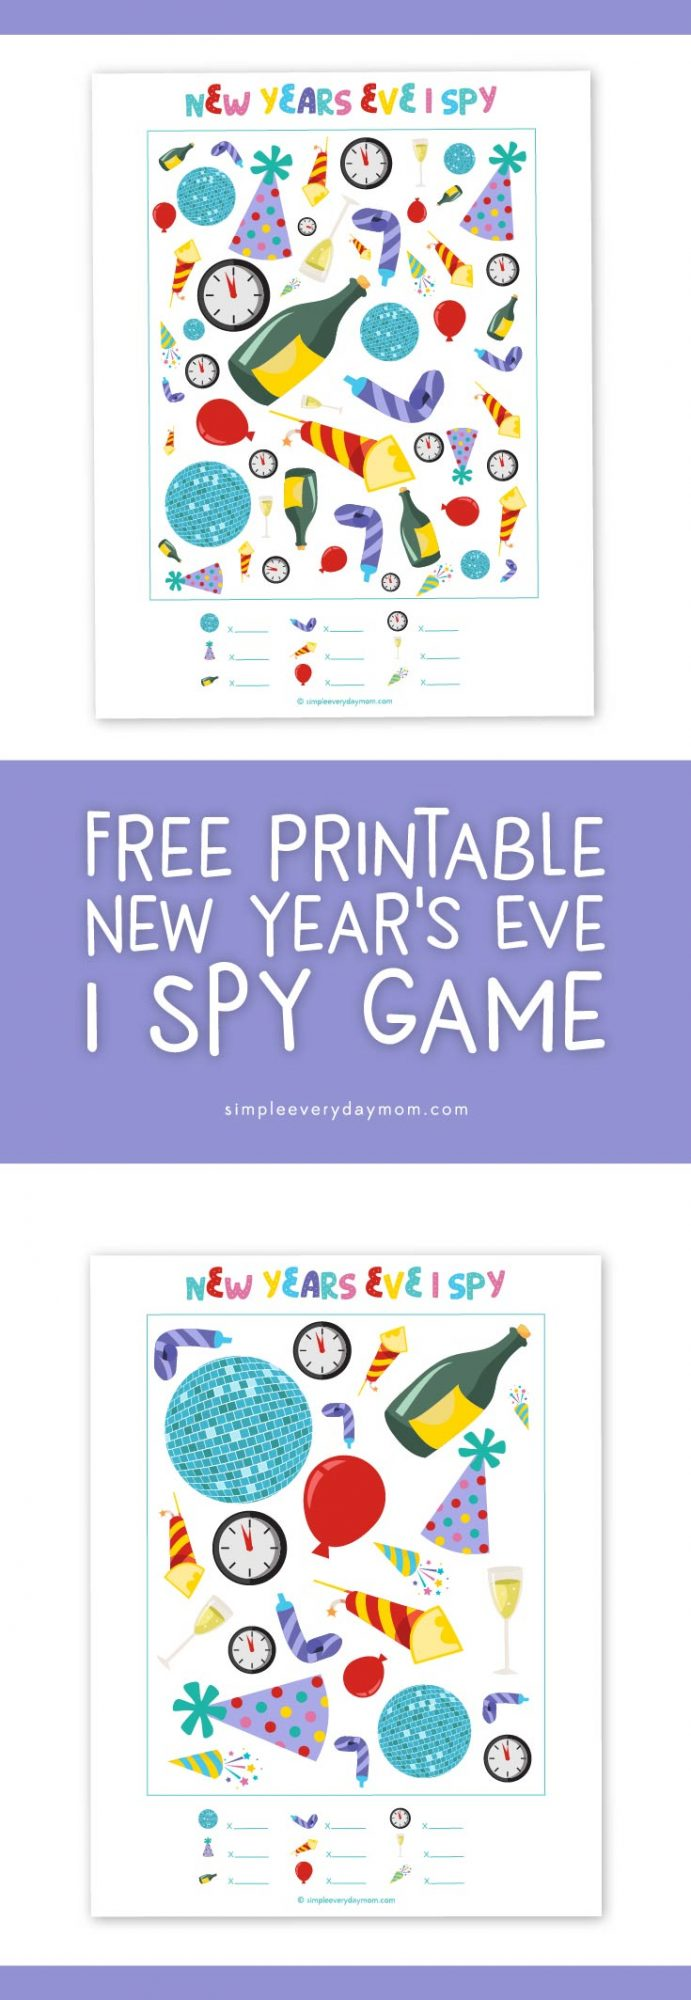 New Years Eve Activities For Kids | Free printable I spy game #newyearseve #kidsactivities #freeprintables